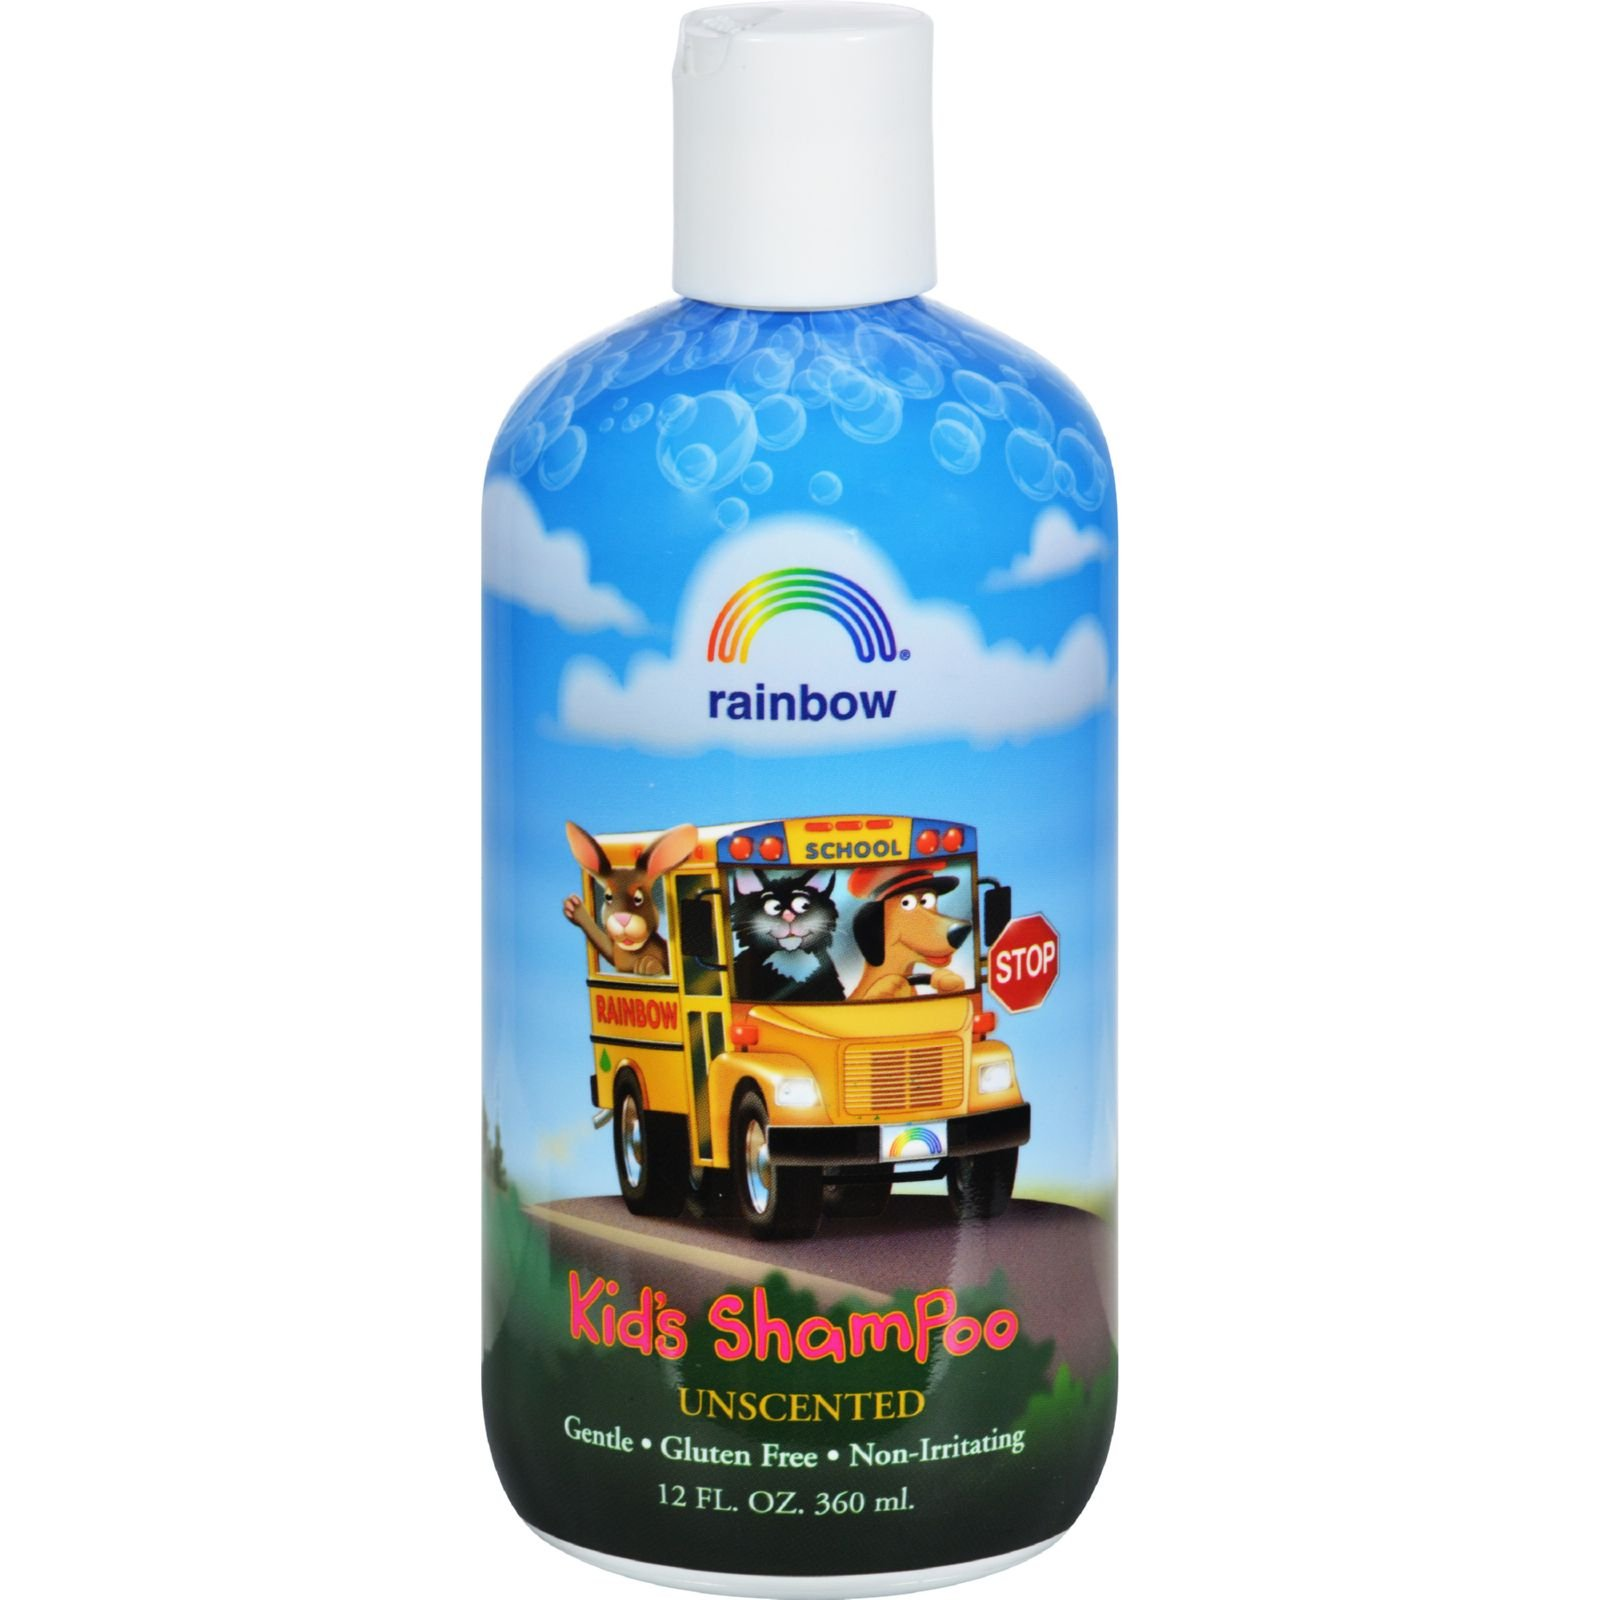 Rainbow Research Organic Herbal Shampoo For Kids Unscented - Non Irritating - Gentle - 12 fl oz (Pack of 4) by Rainbow Research